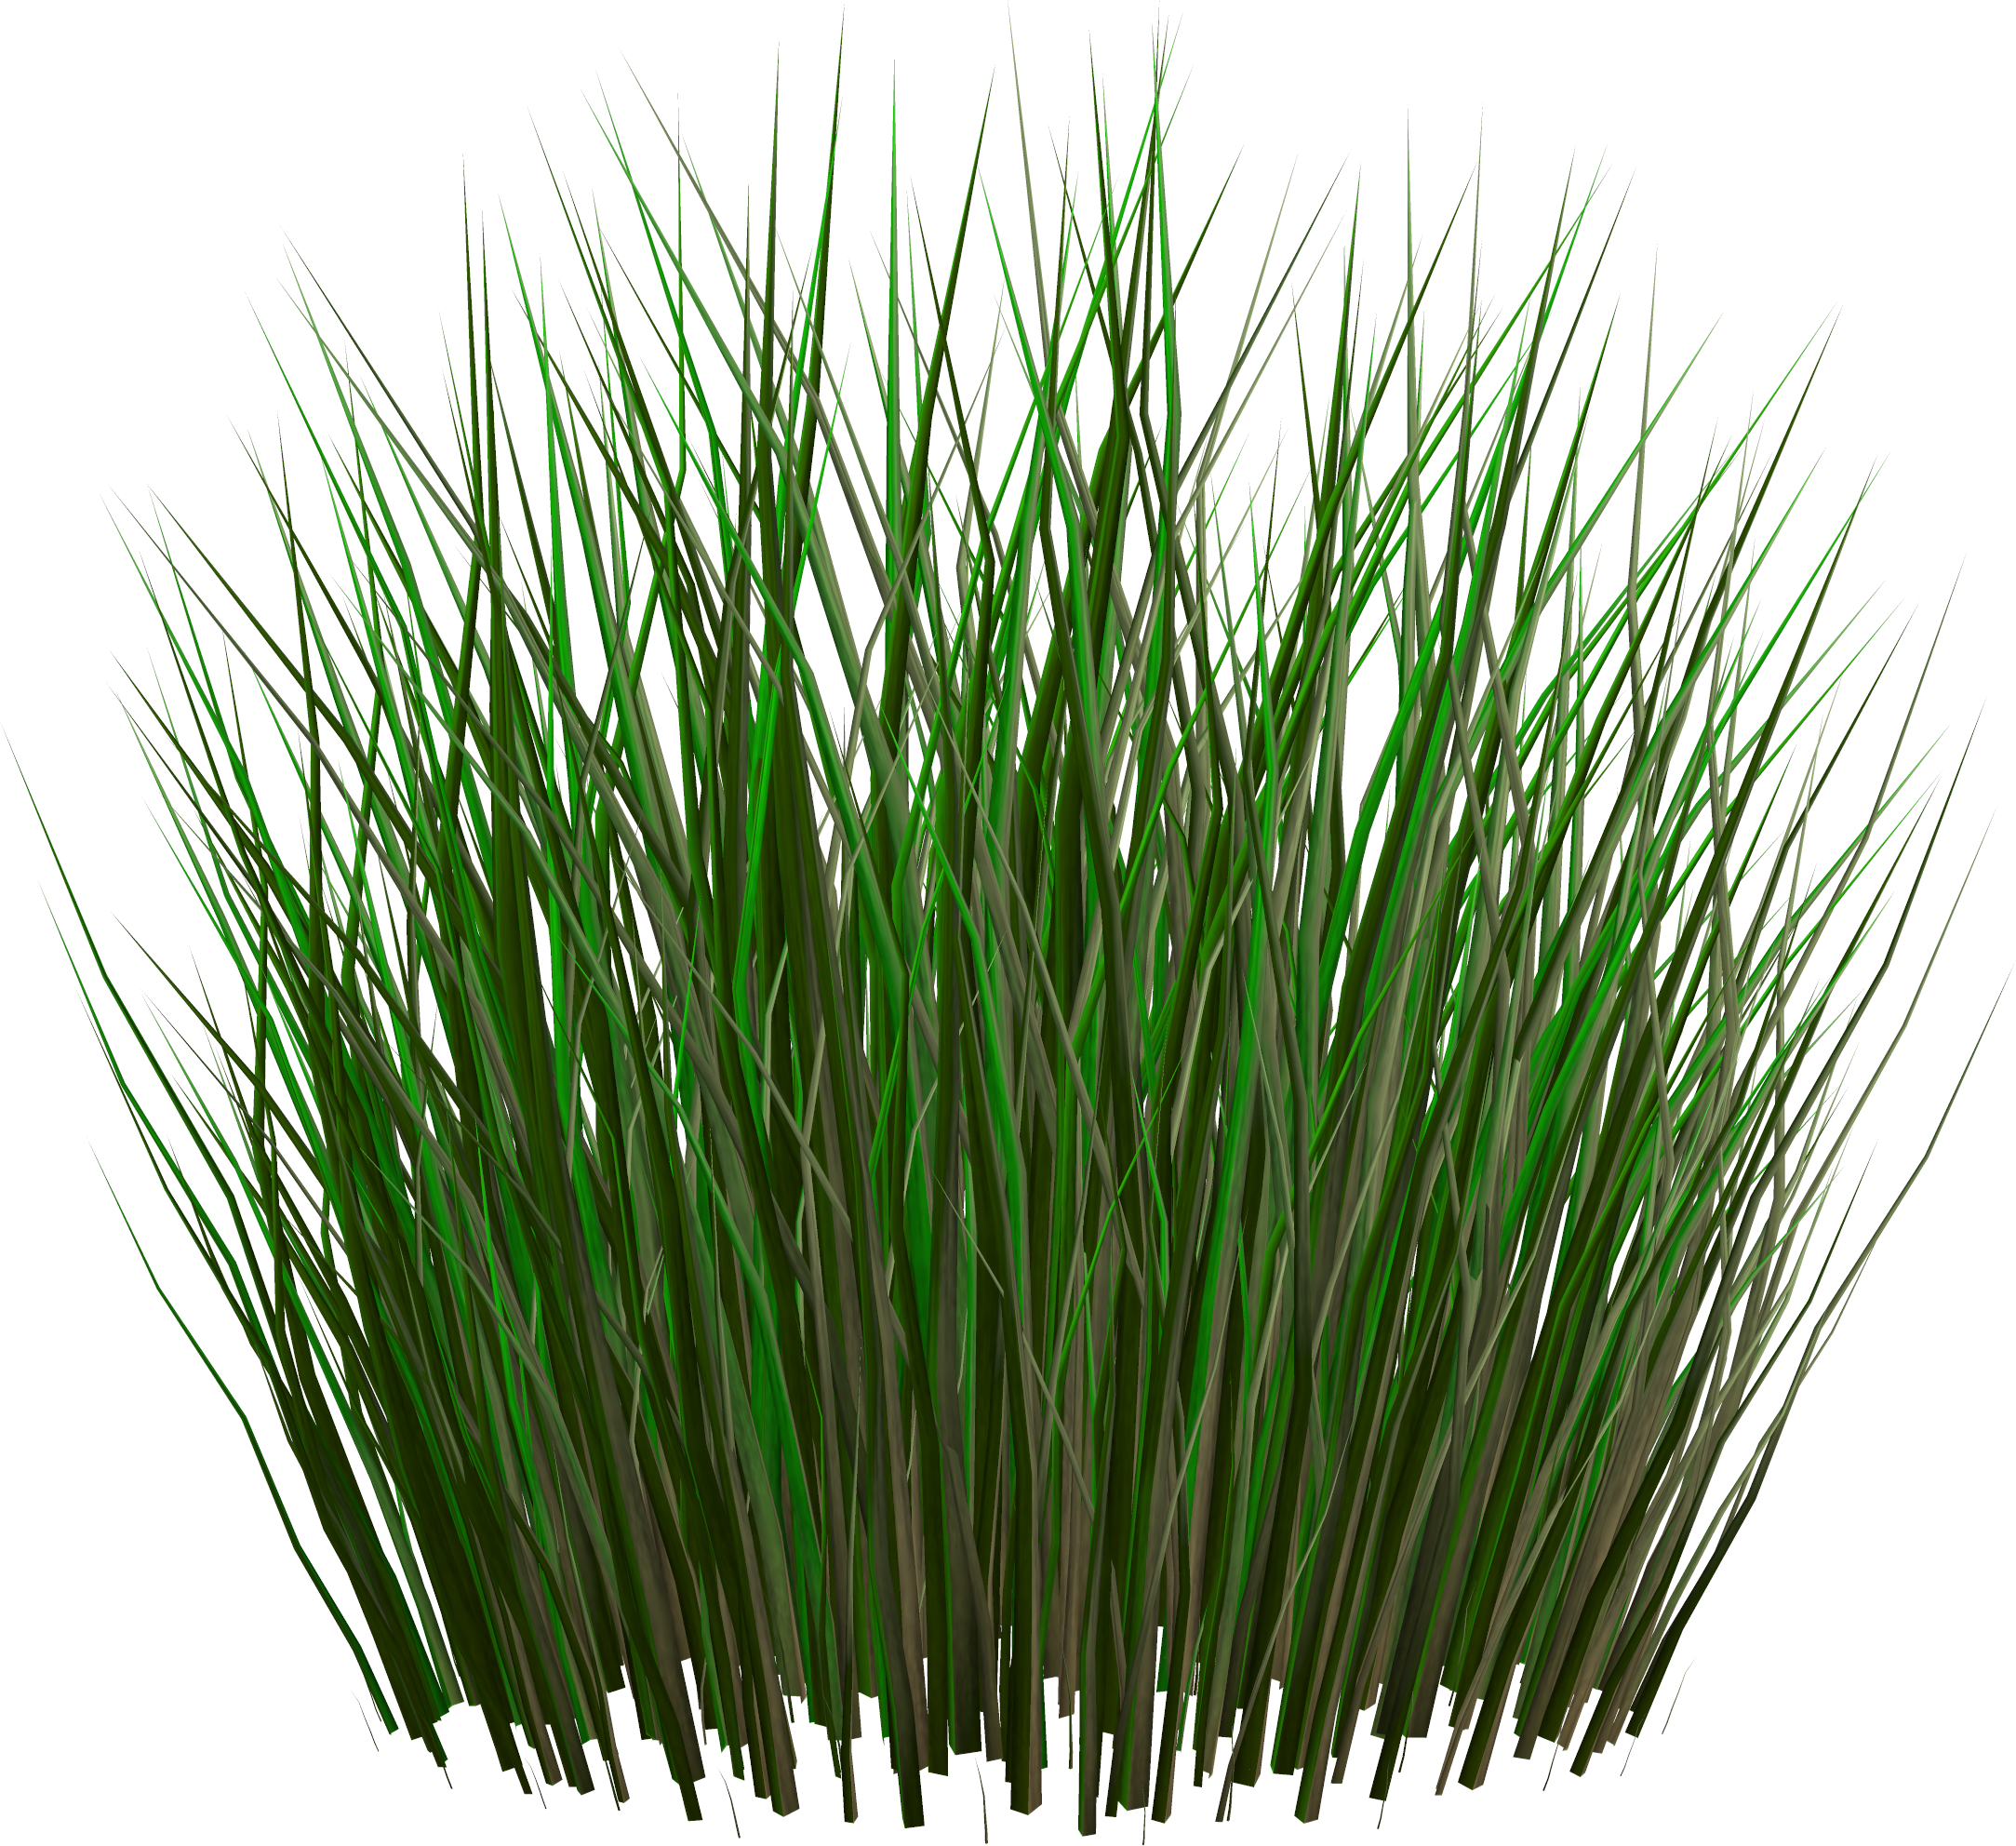 Grass png texture. Image green picture pinterest